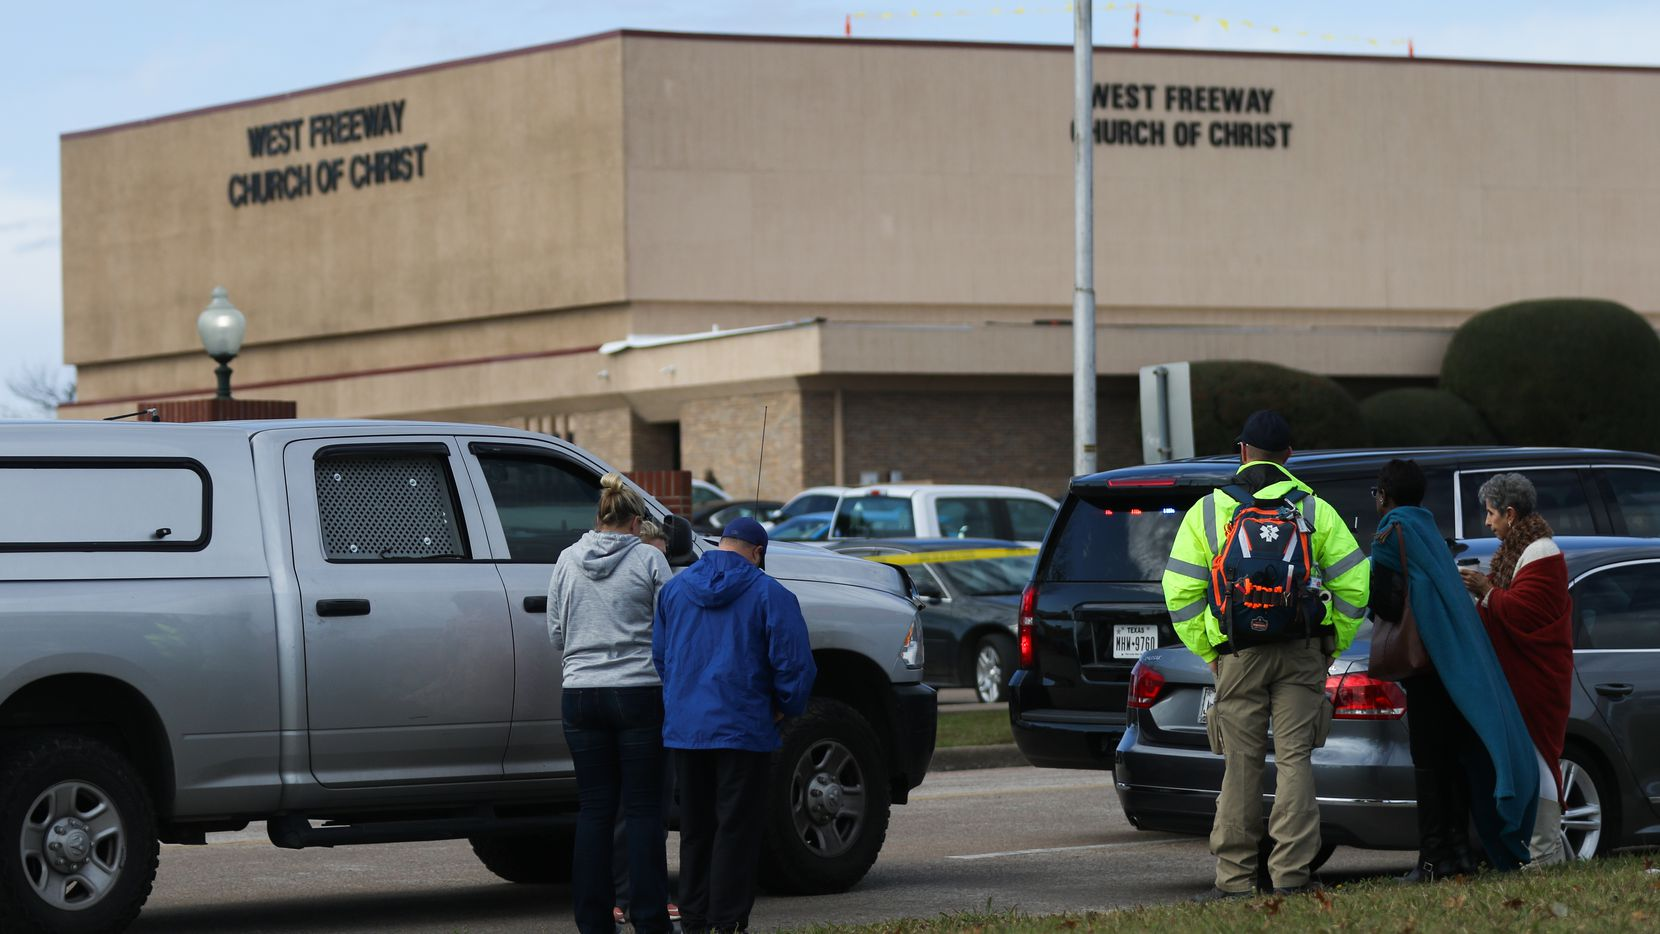 2 People Dead After Shooting at Church in White Settlement, Texas